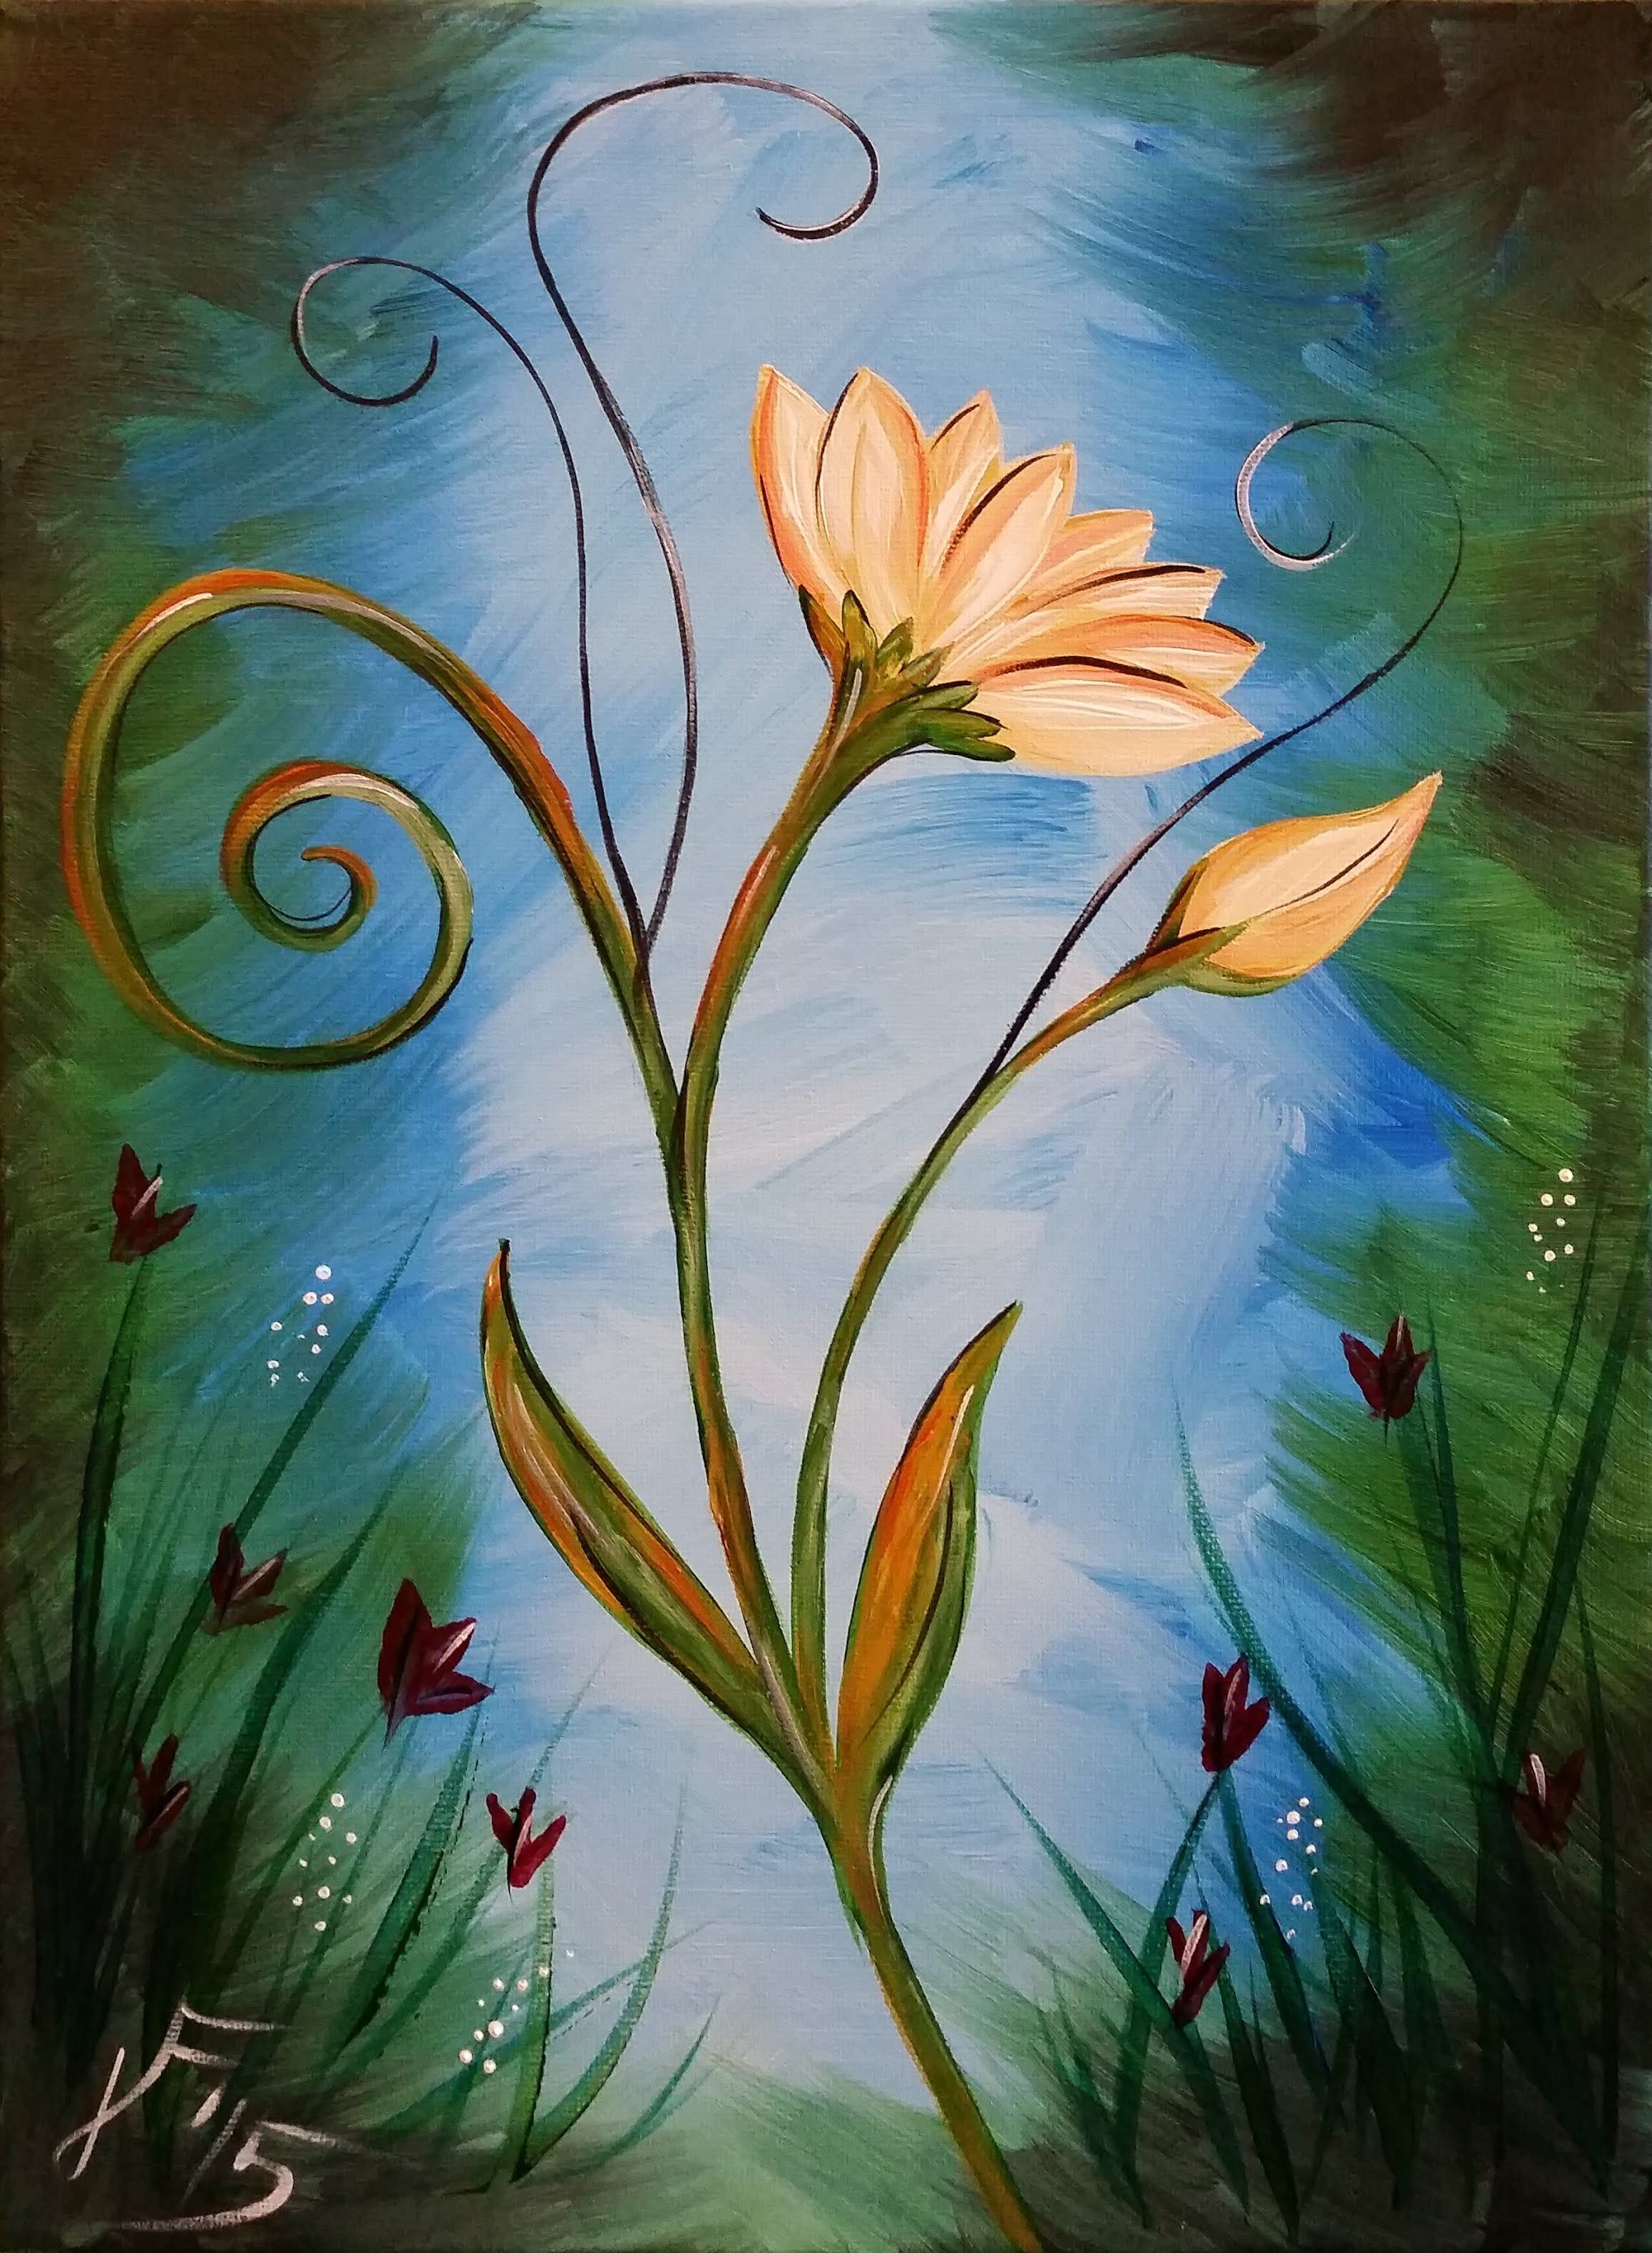 Canvas Painting In This Video Ill Be Showing You How To Paint An Abstract Flower